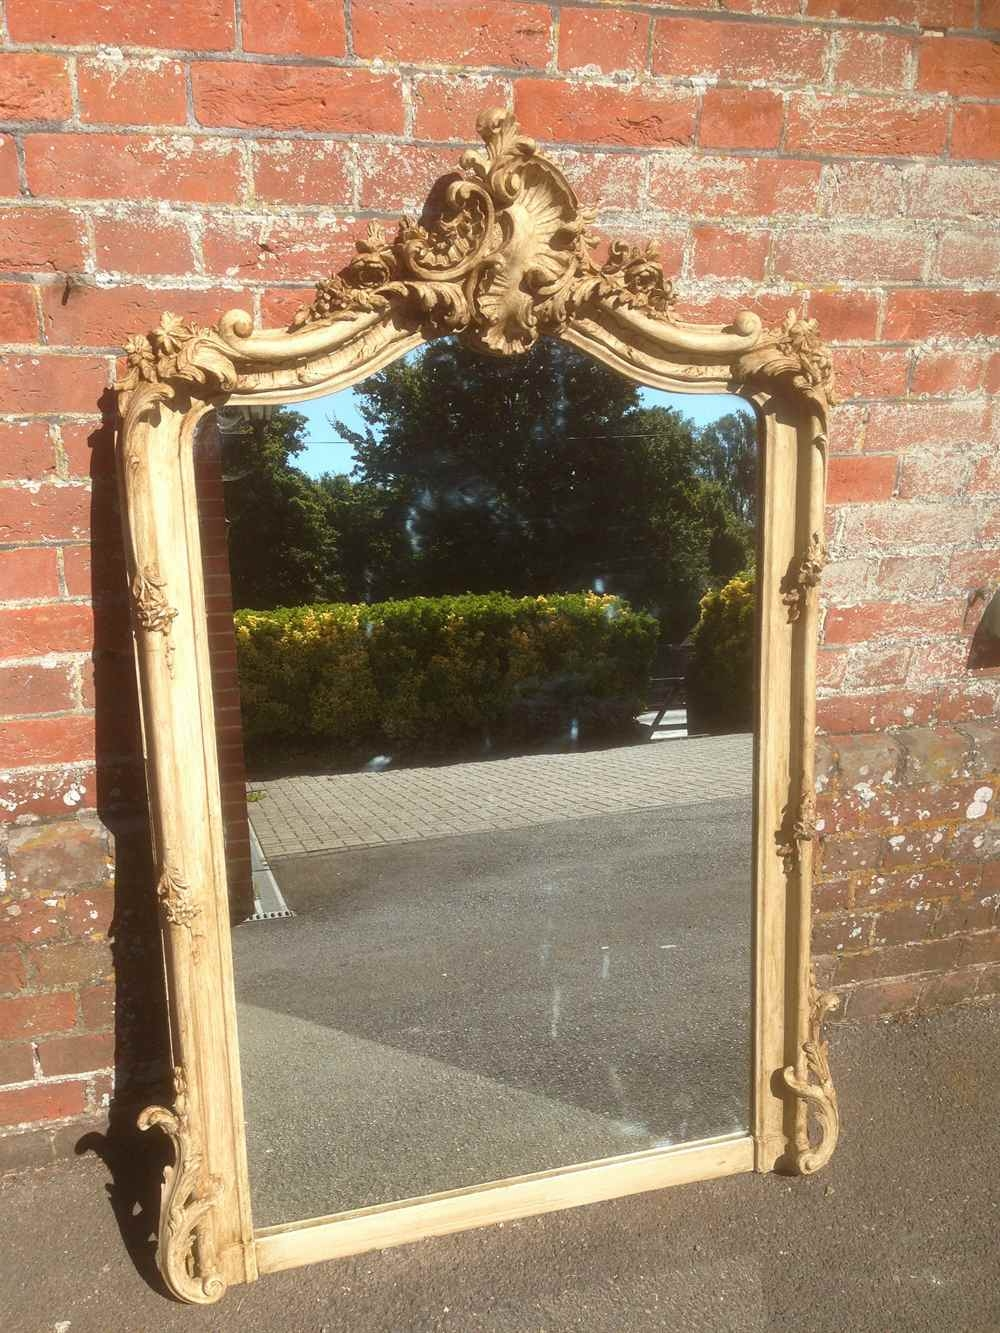 A Wonderful Antique 19th Century Large French Ornate Painted Regarding Large French Mirrors (Image 5 of 15)